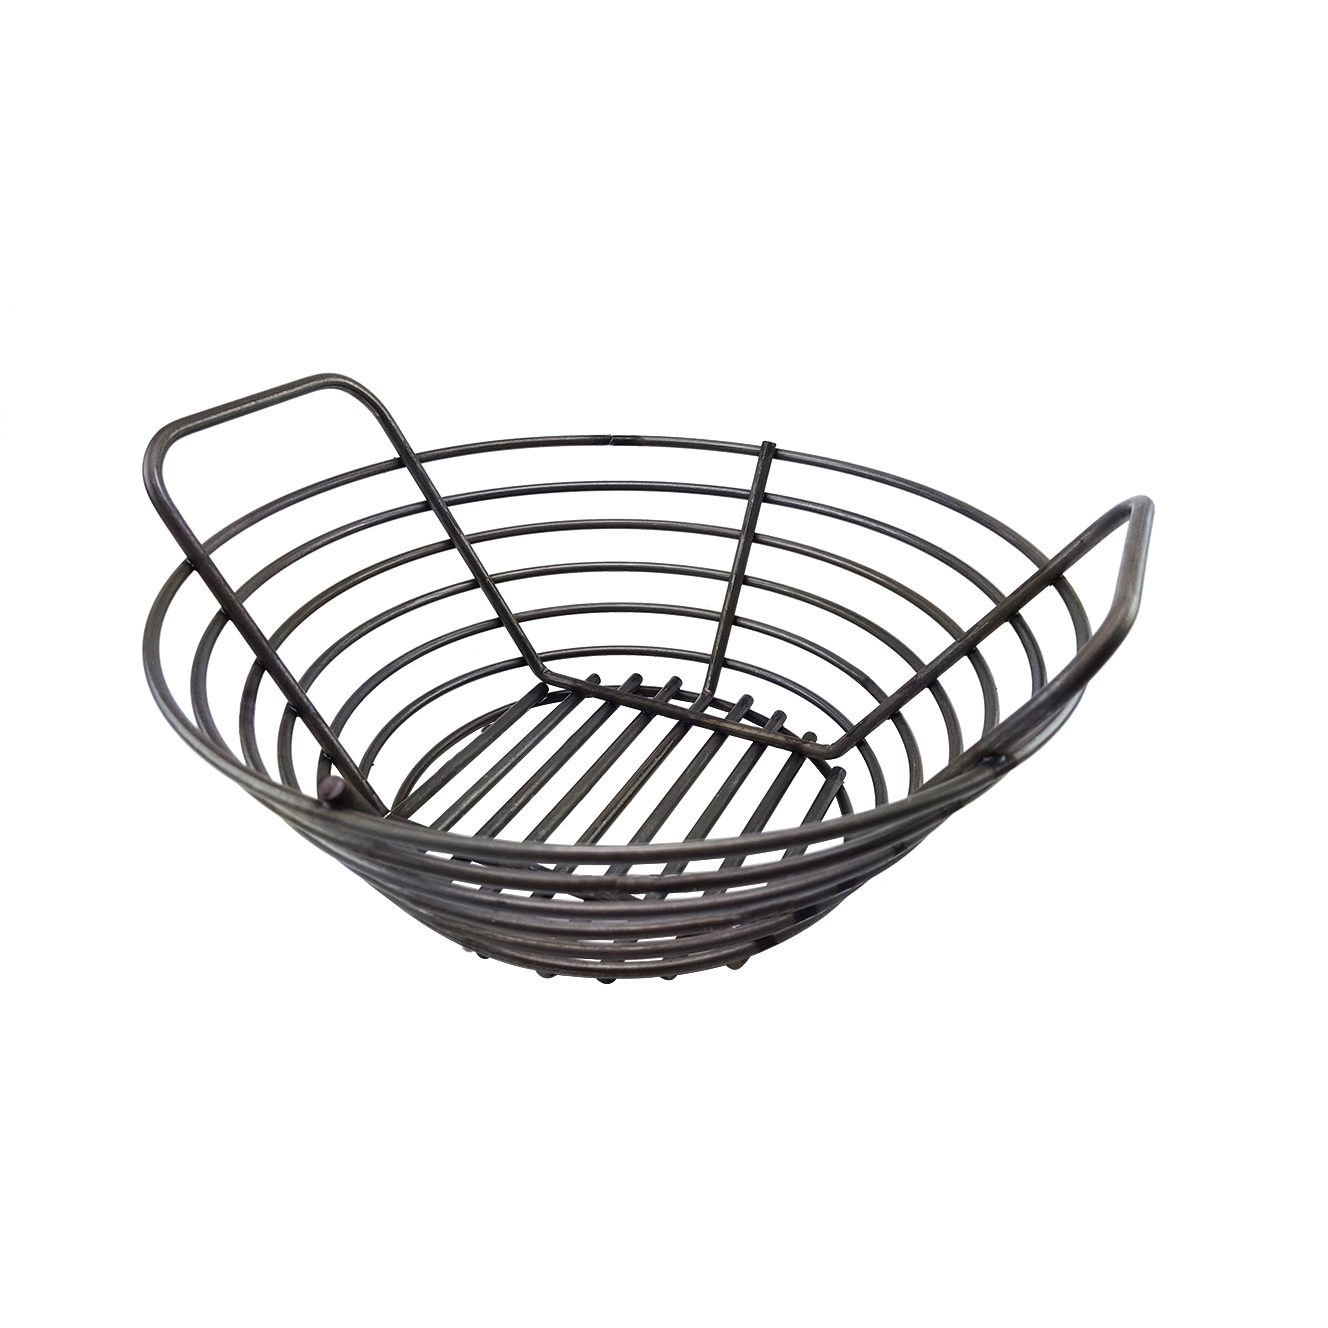 Kick Ash Basket - Medium Bge